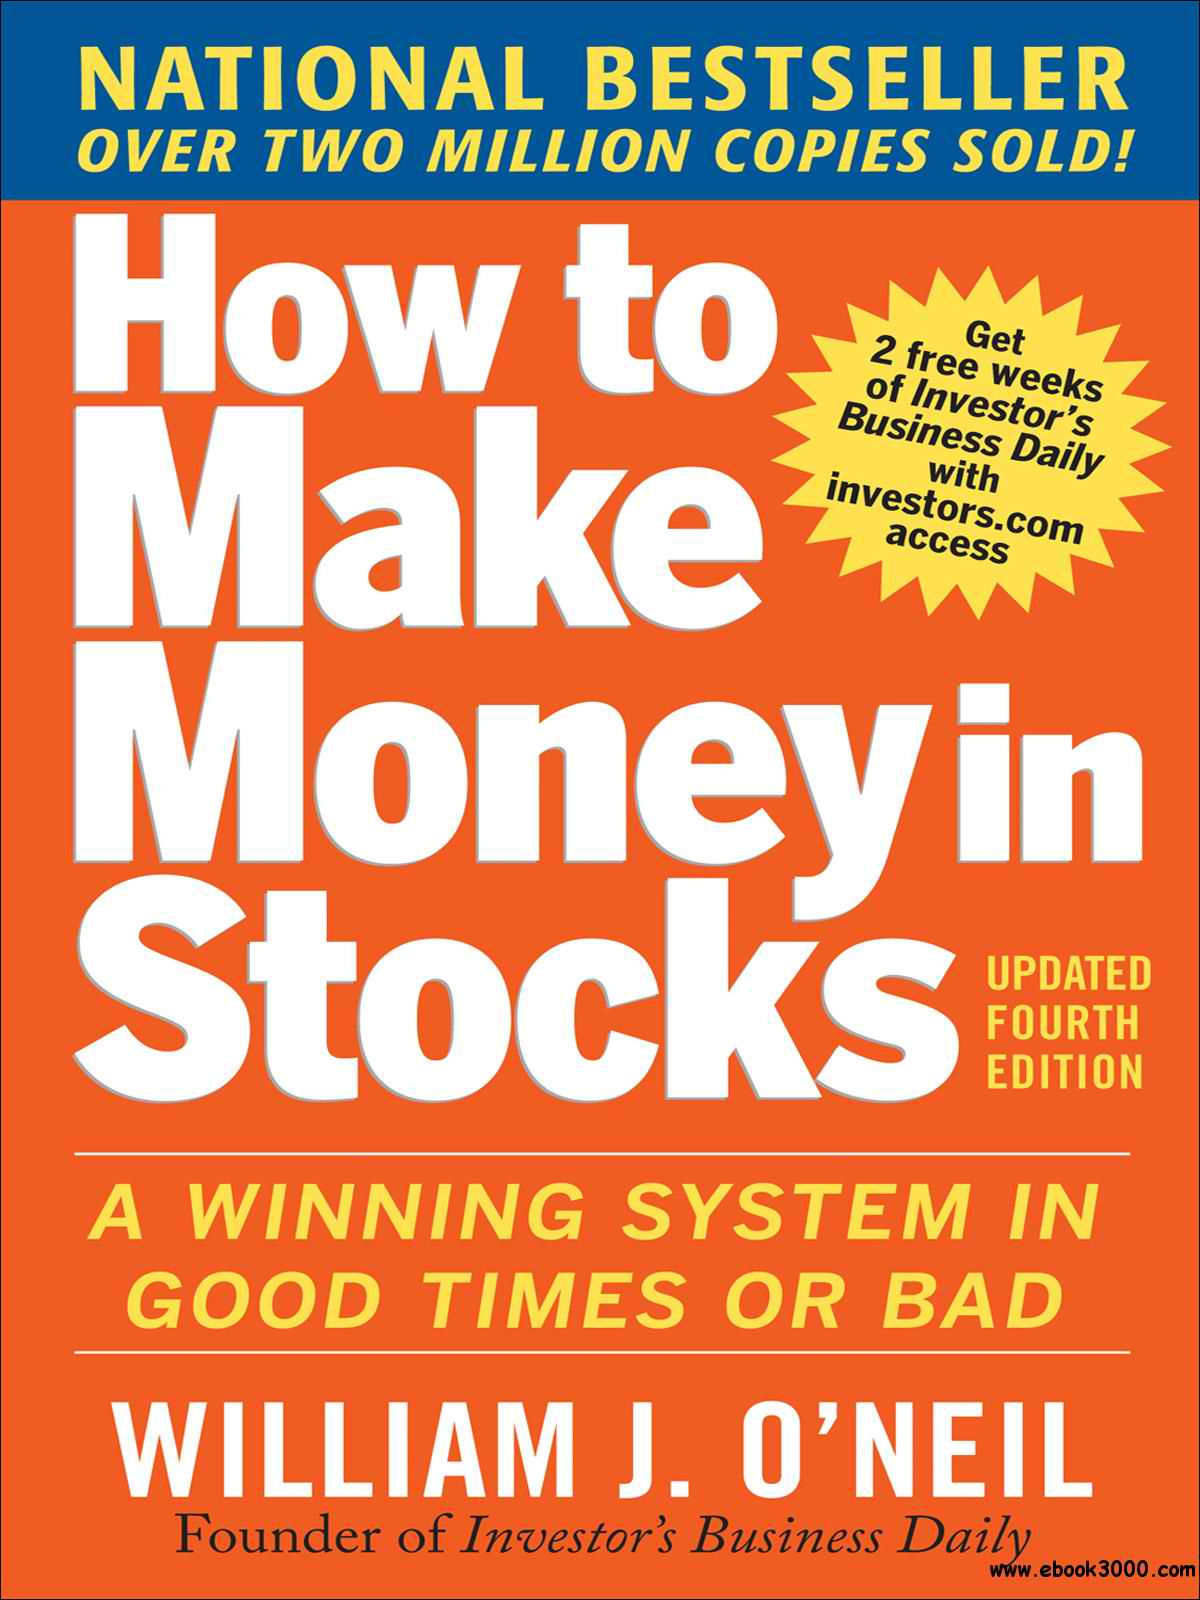 How to Make Money in Stocks (Book Review) | Stock Ideas